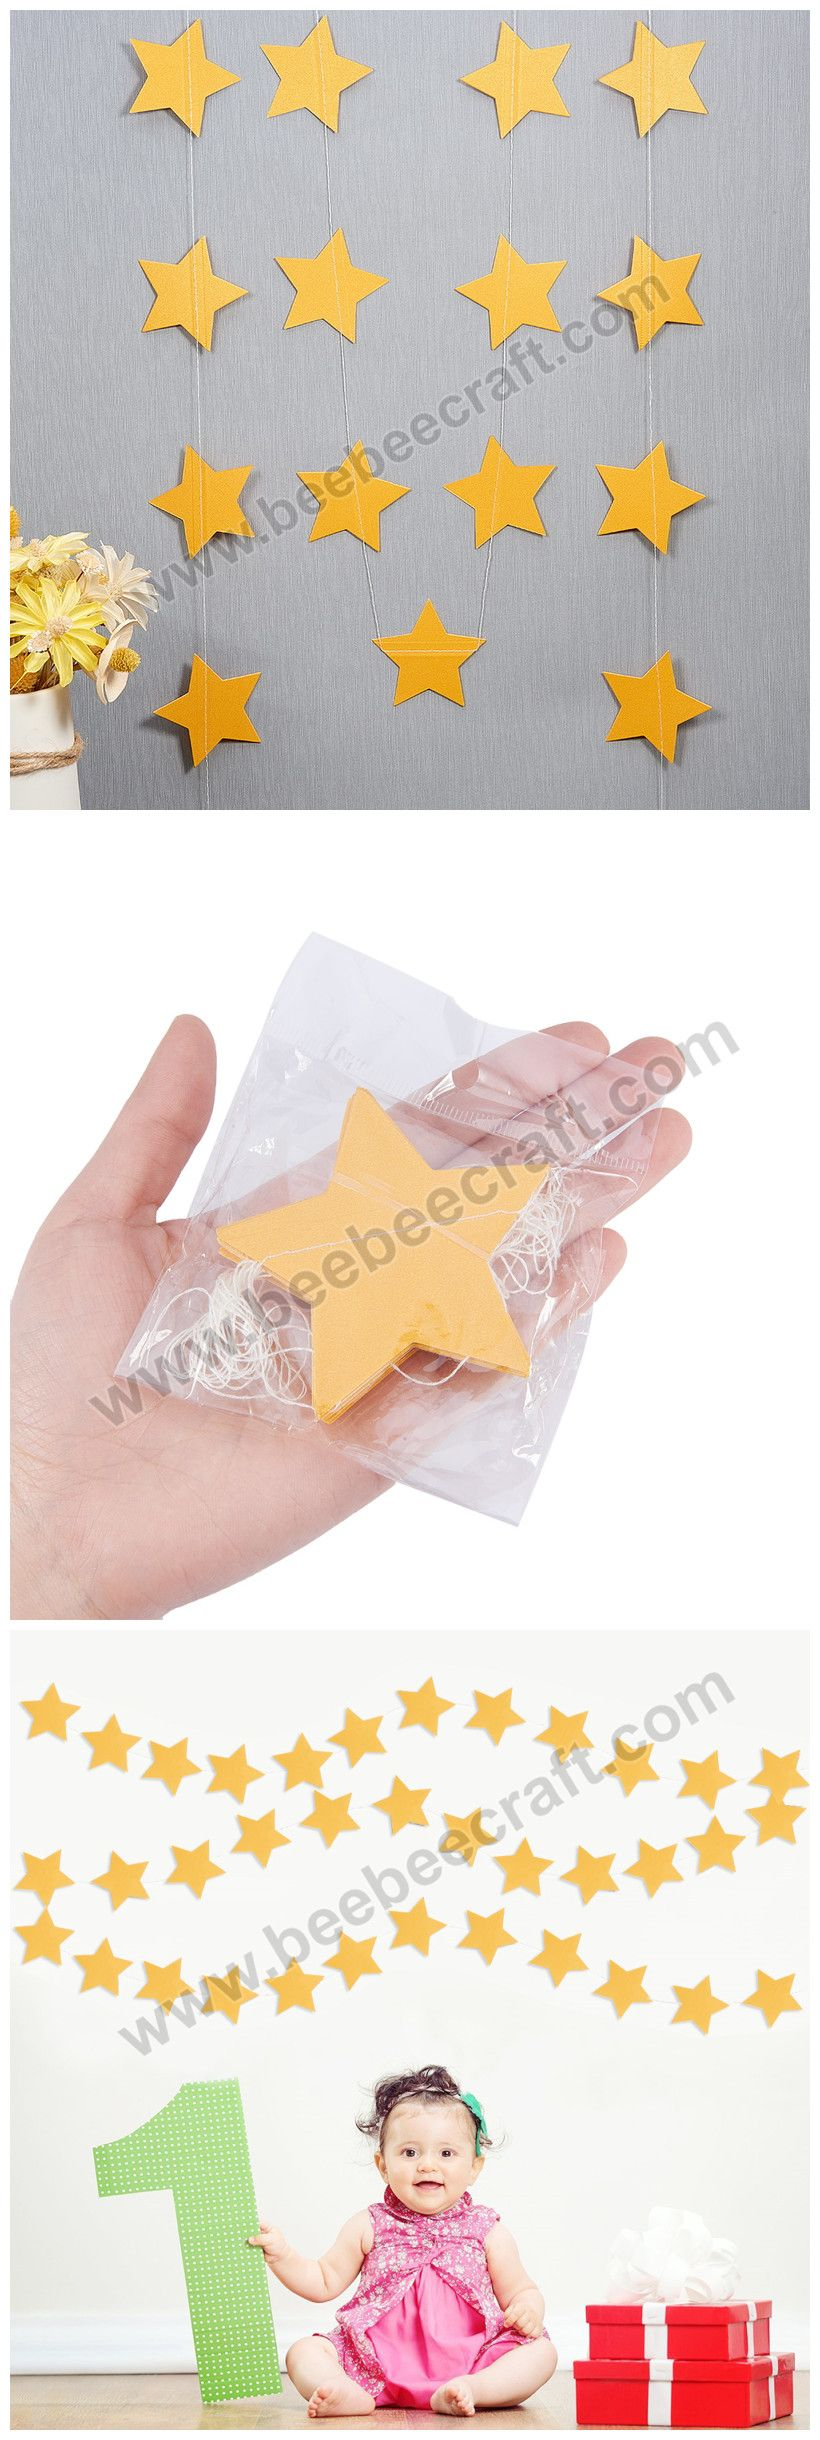 #BENECREAT 52 Feet  Star Paper Garland Whaling Bunting Banner #HangingDecoration about 92 Stars party